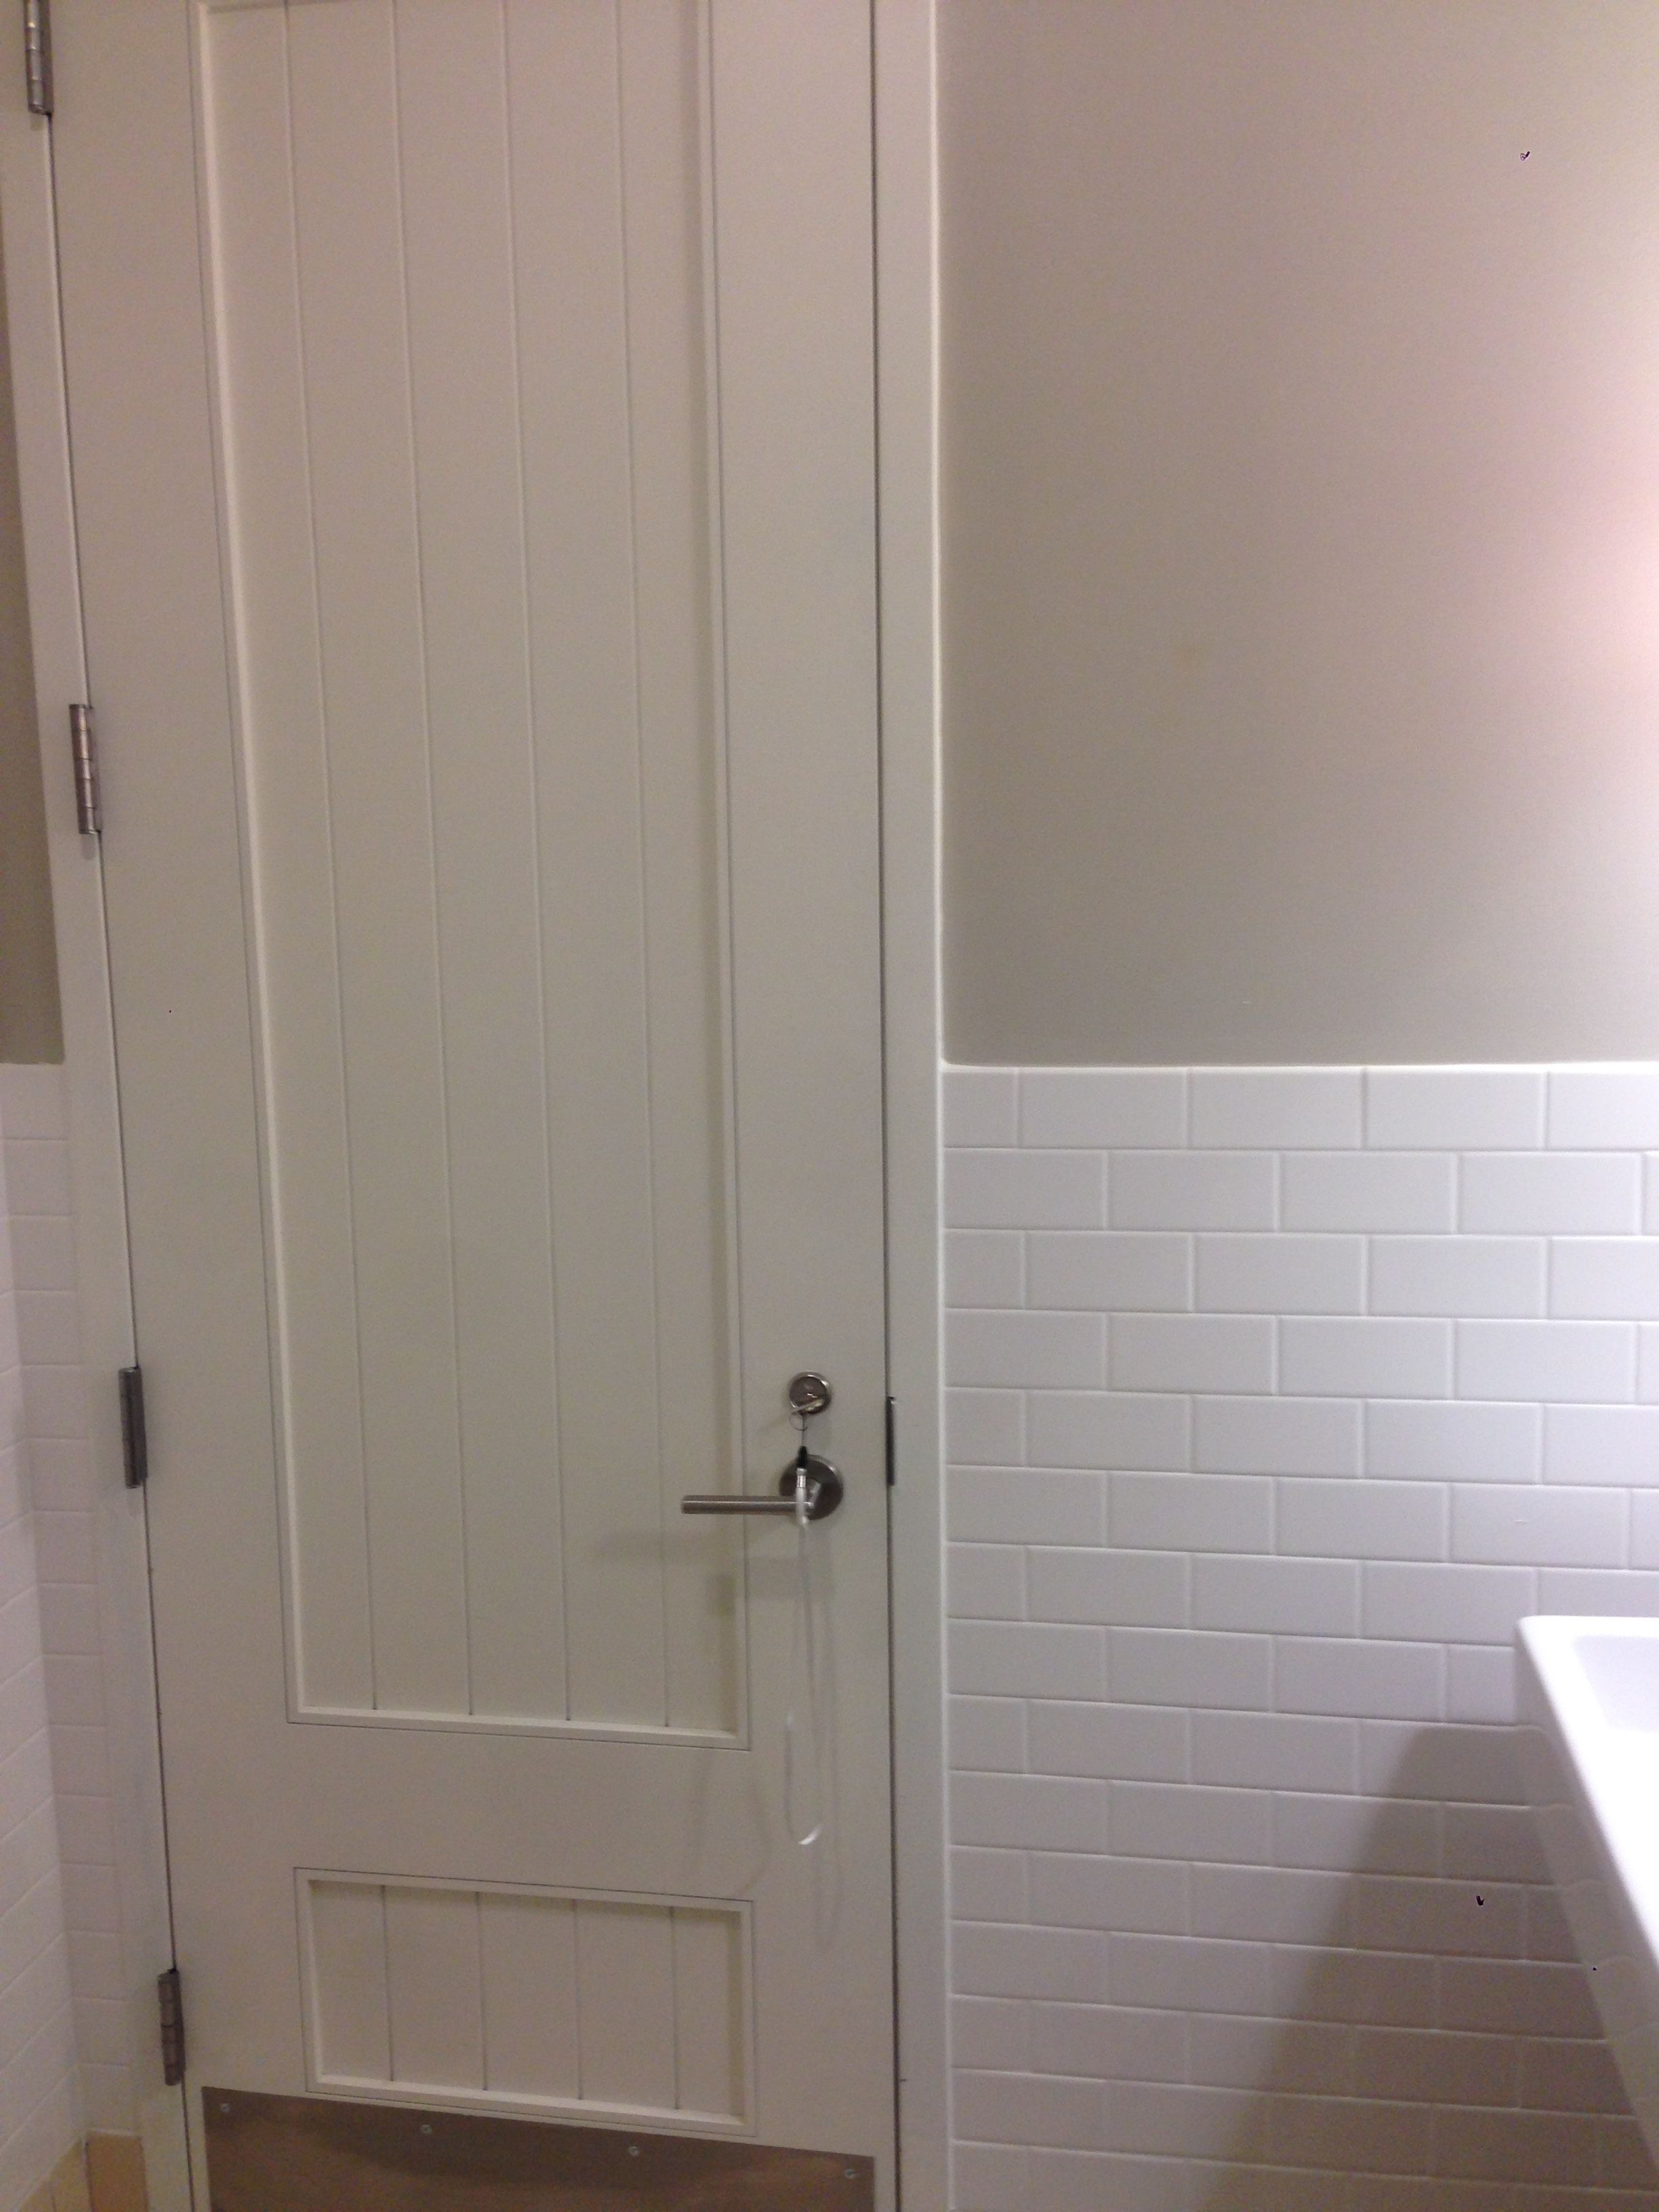 Glossy White Paneling Beige Wall And White Subway Tile White Paneling Beige Walls White Subway Tile